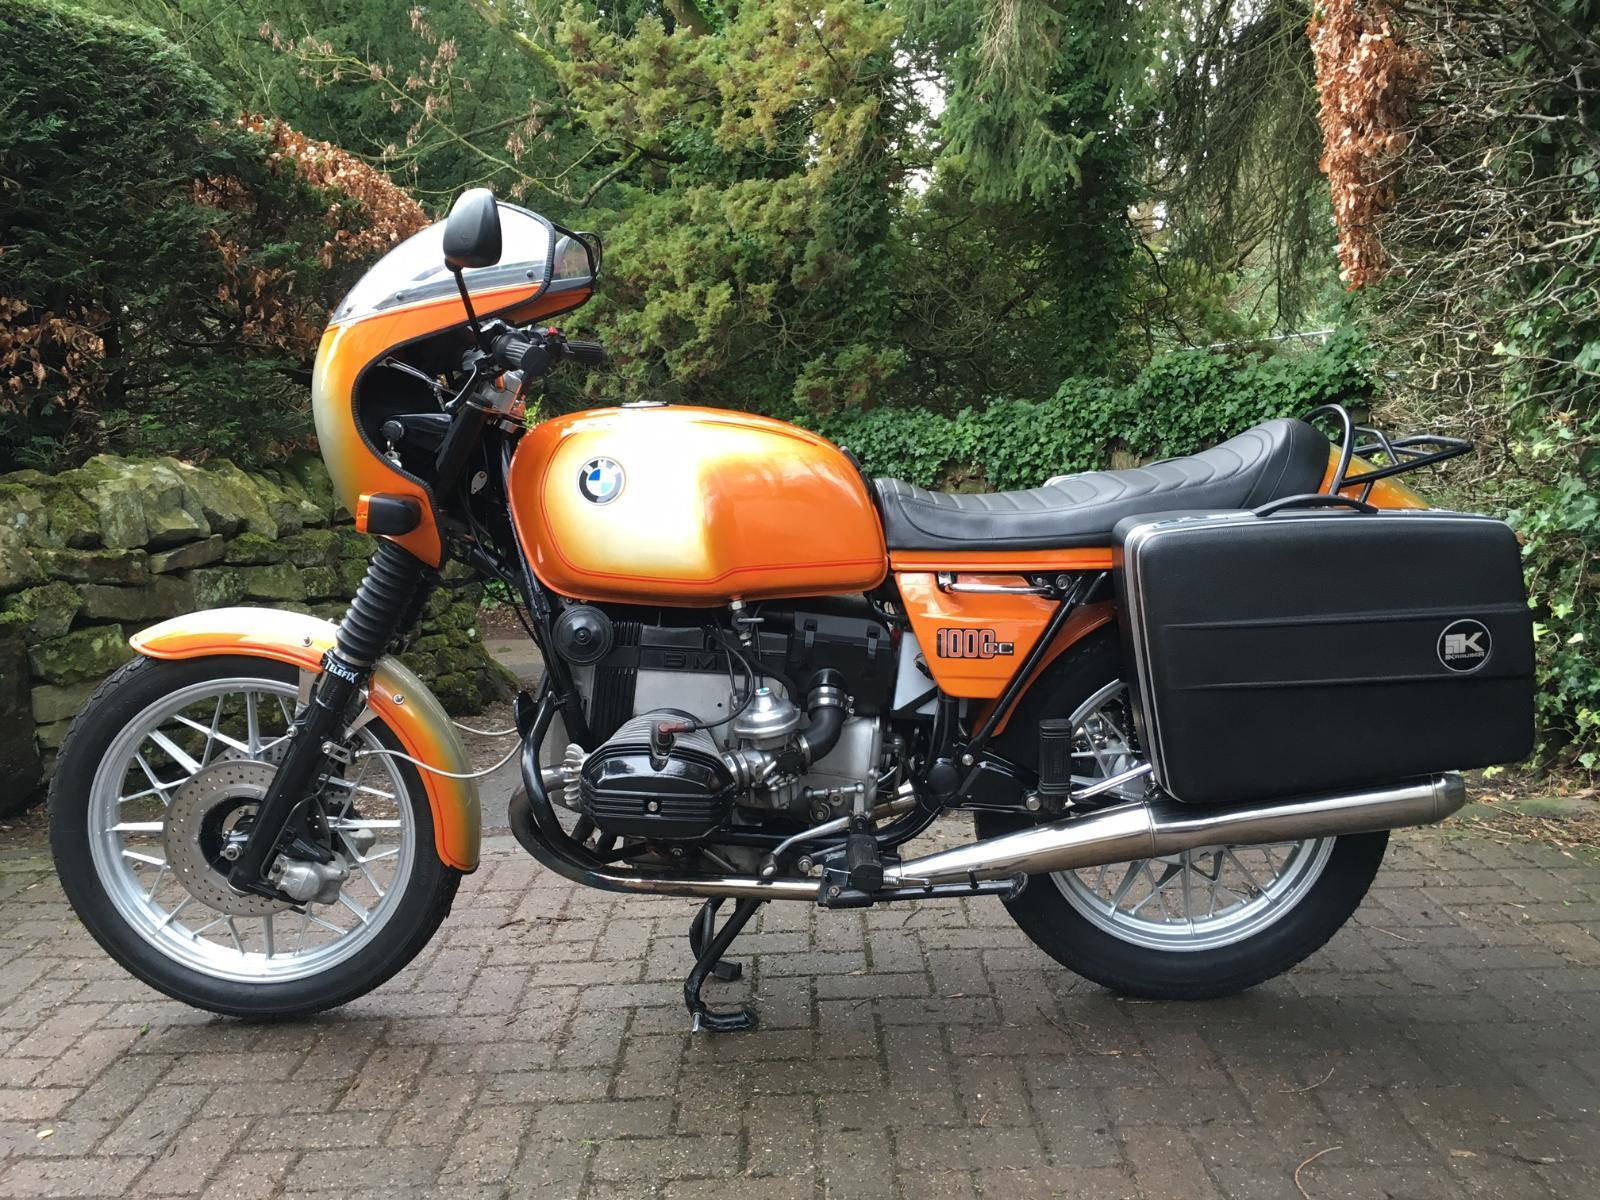 Restored Bmw R100 7 1978 Photographs At Classic Bikes